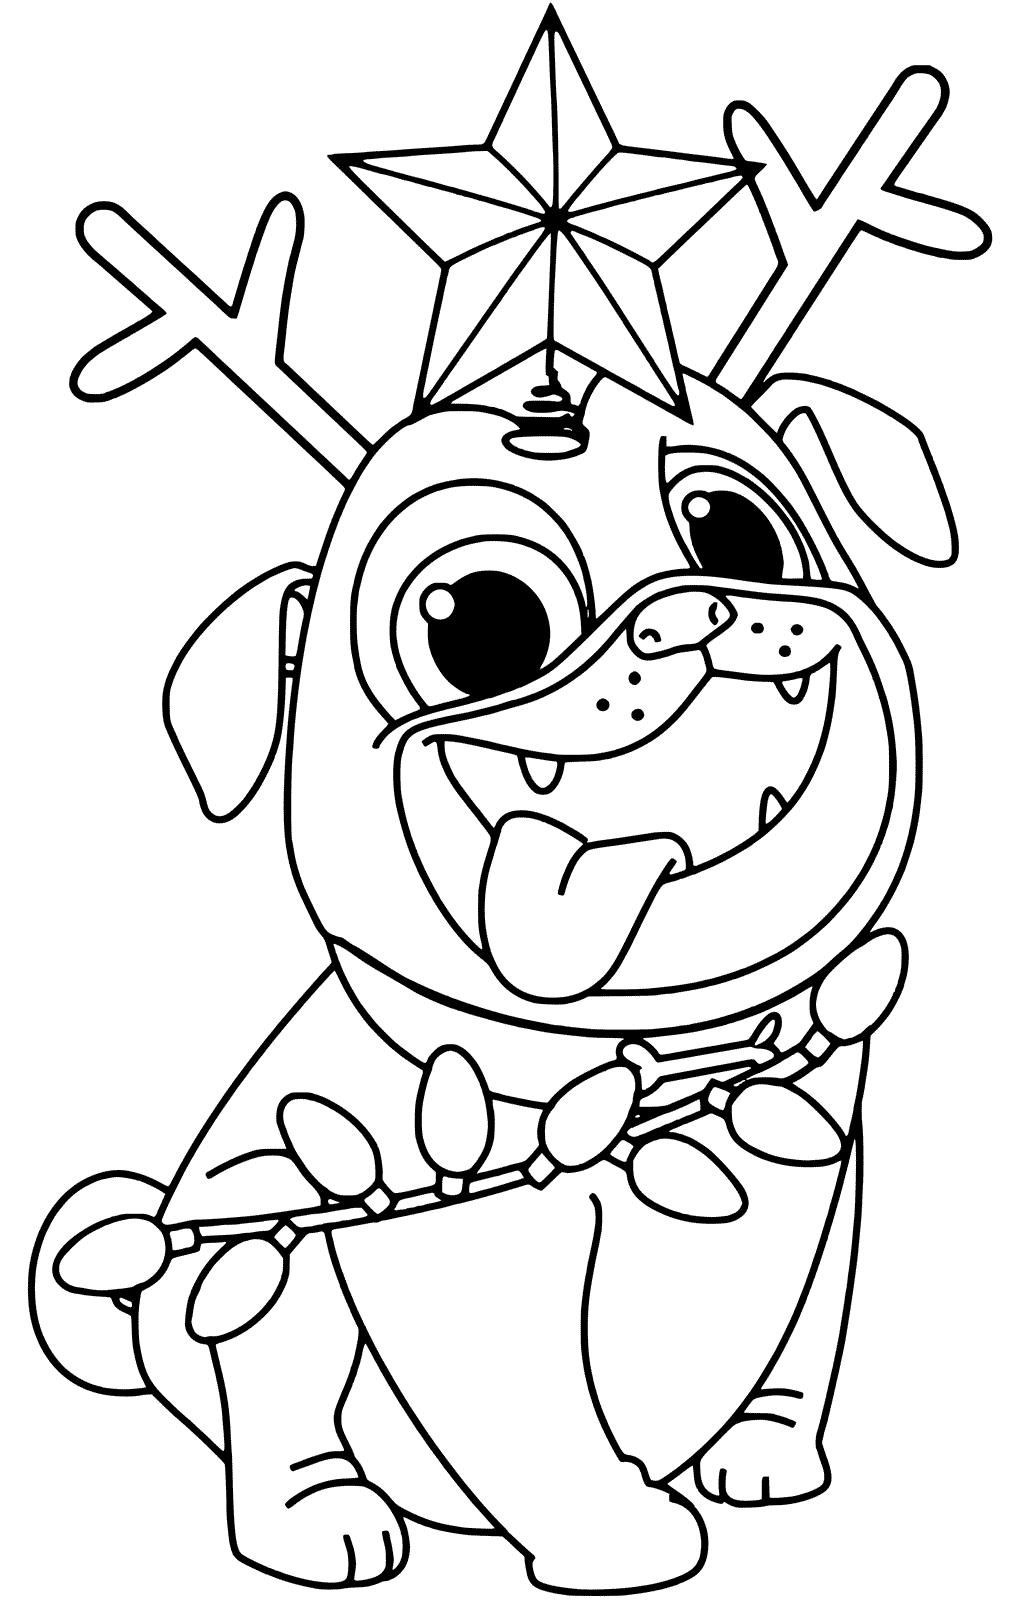 free dog coloring pages free printable dog coloring pages for kids coloring pages free dog